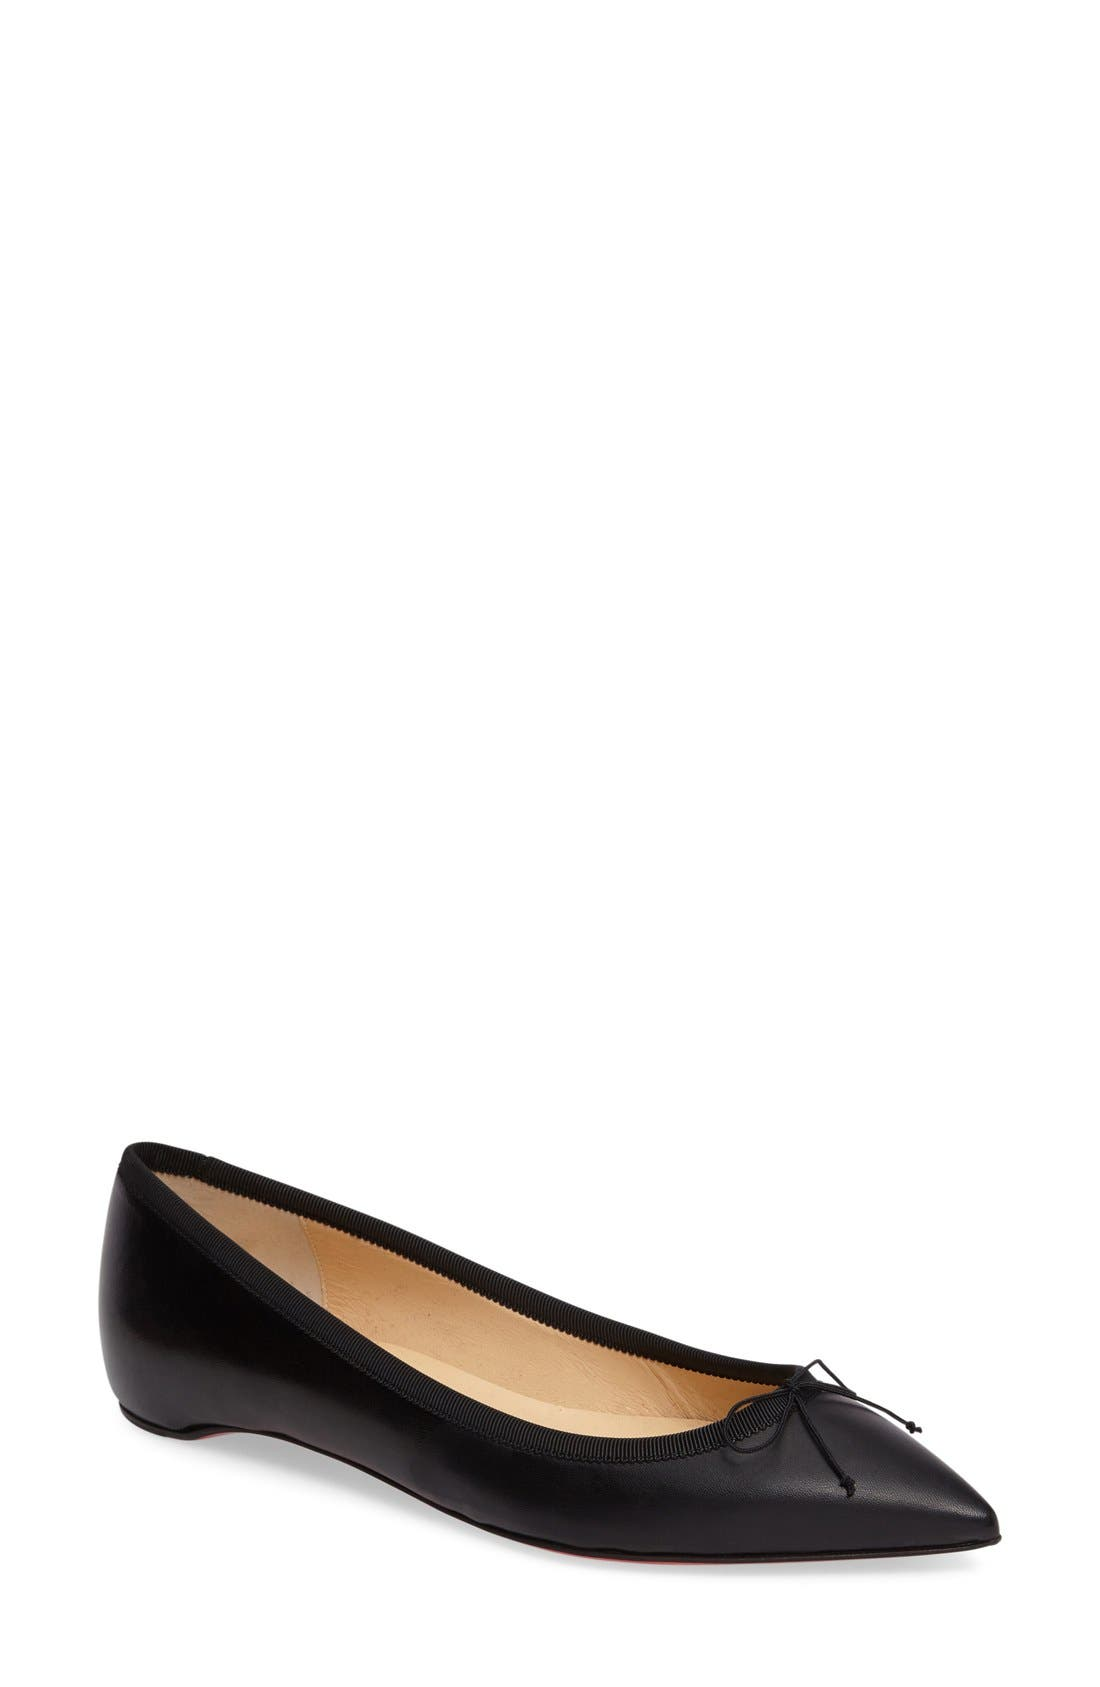 Solasofia Pointy Toe Flat,                         Main,                         color, Black Leather